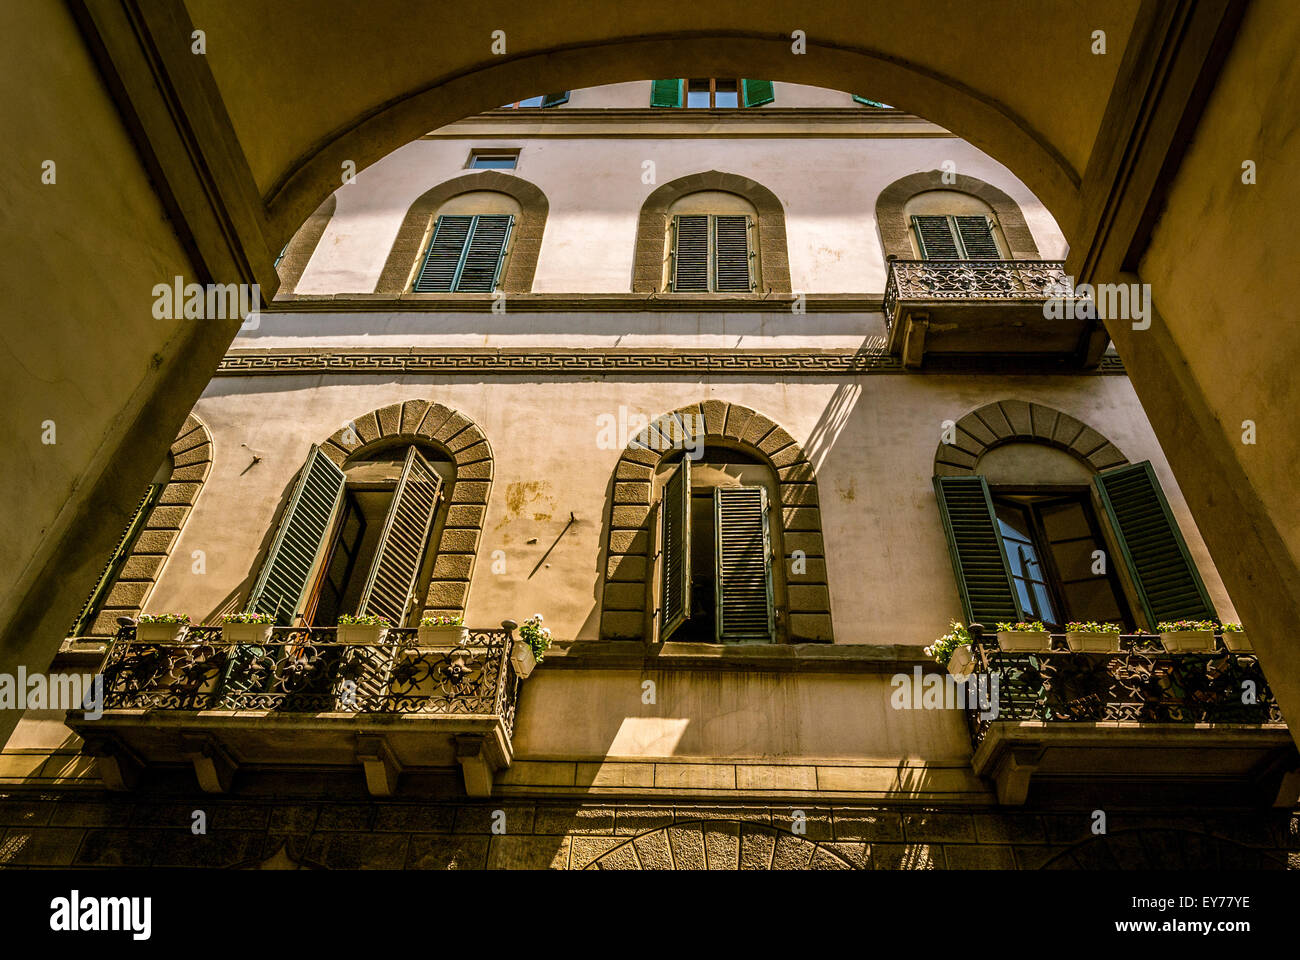 Exterior of a traditional Florentine building. - Stock Image